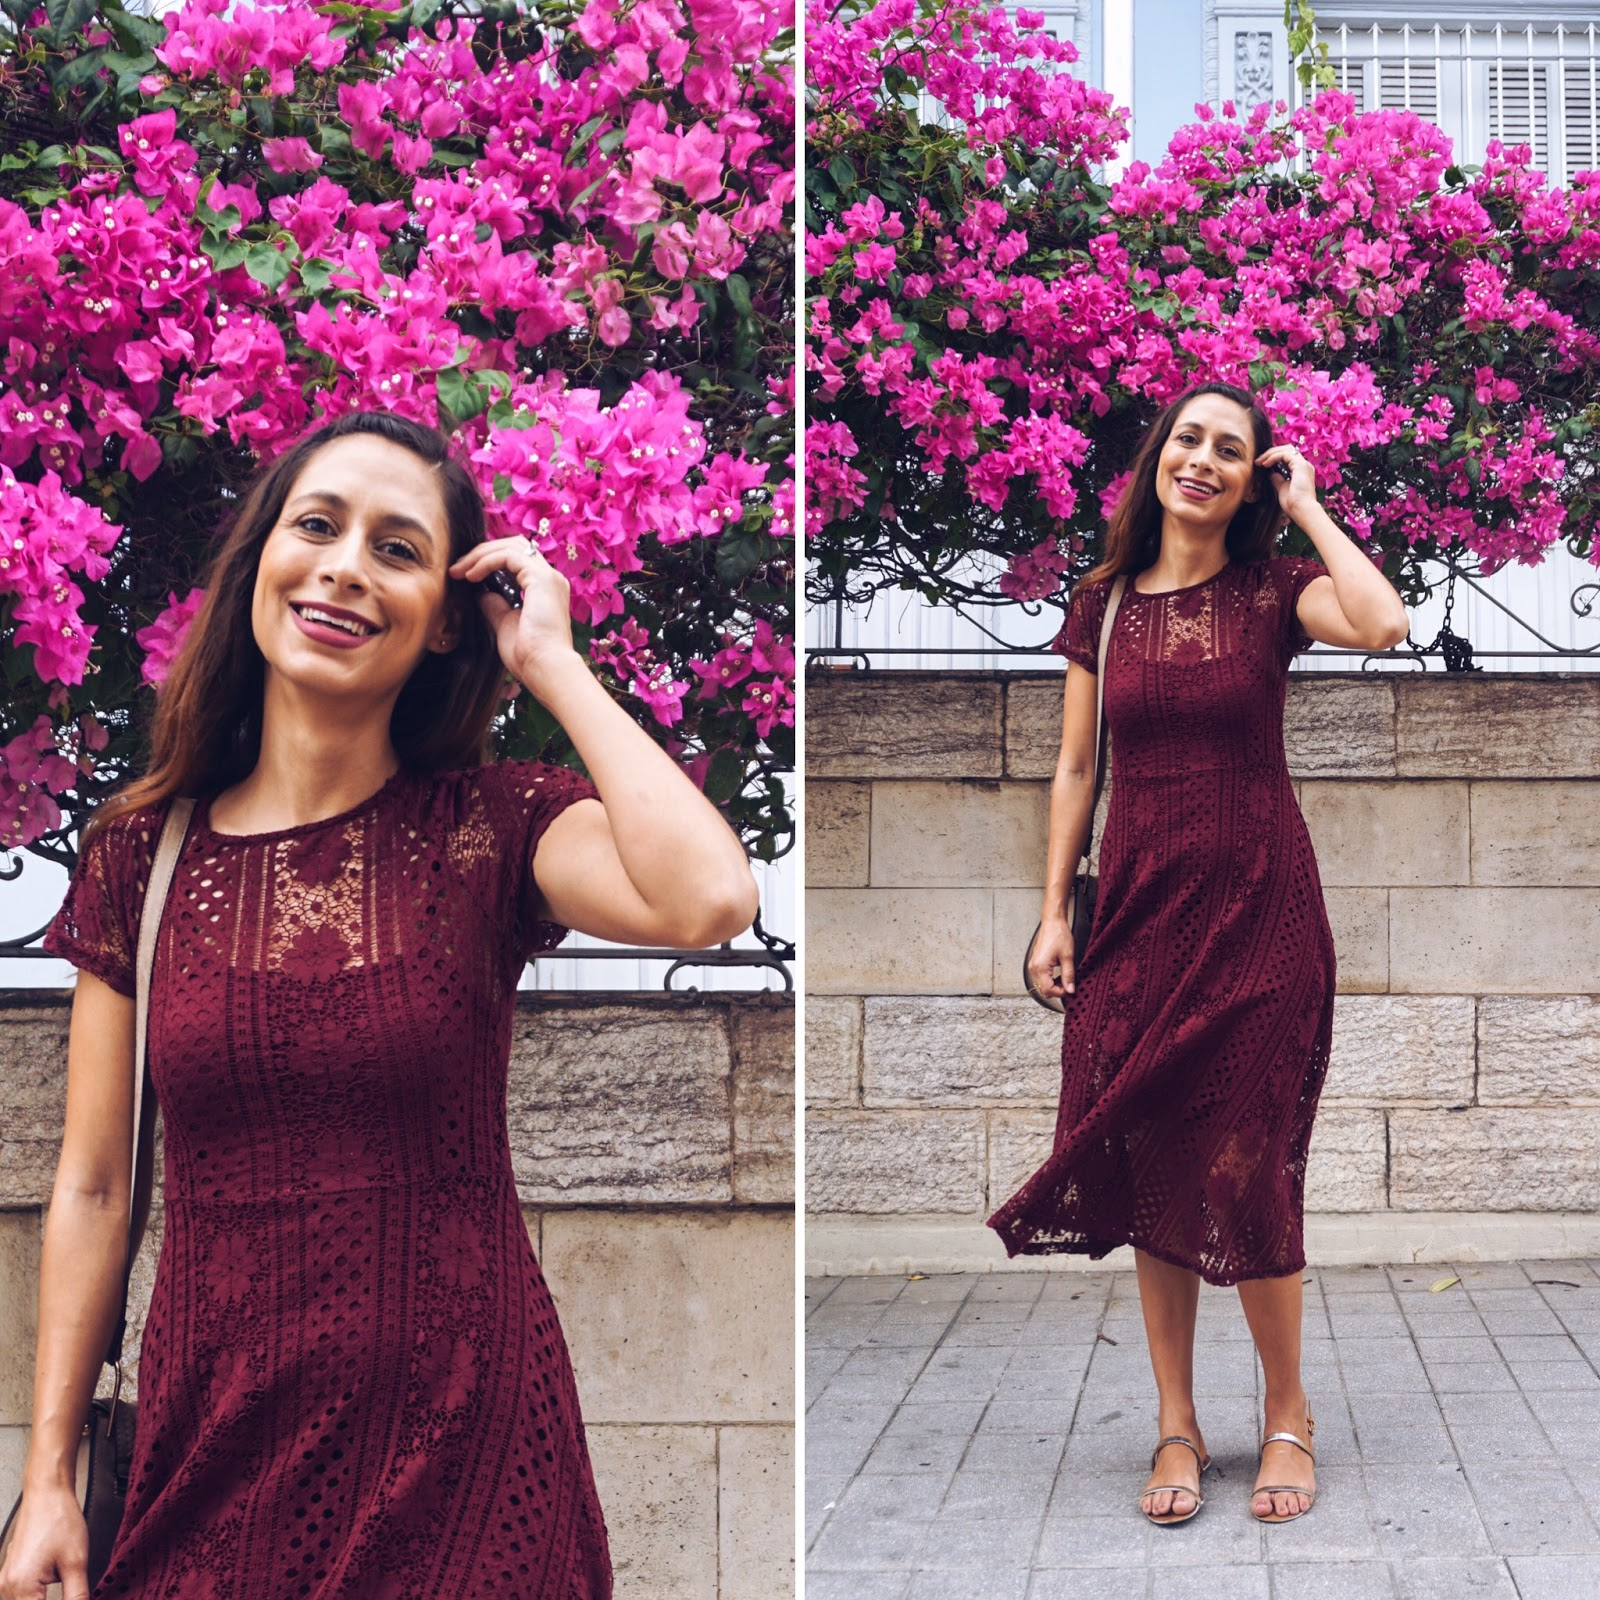 a9f0b8396384 Dress/Traje: Forever 21 $29.90 (other gorgeous burgundy dresses here and  here) Shoes/Zapatos: Zara (similar here and here) Bag/Cartera: TJ Maxx  (brand ...